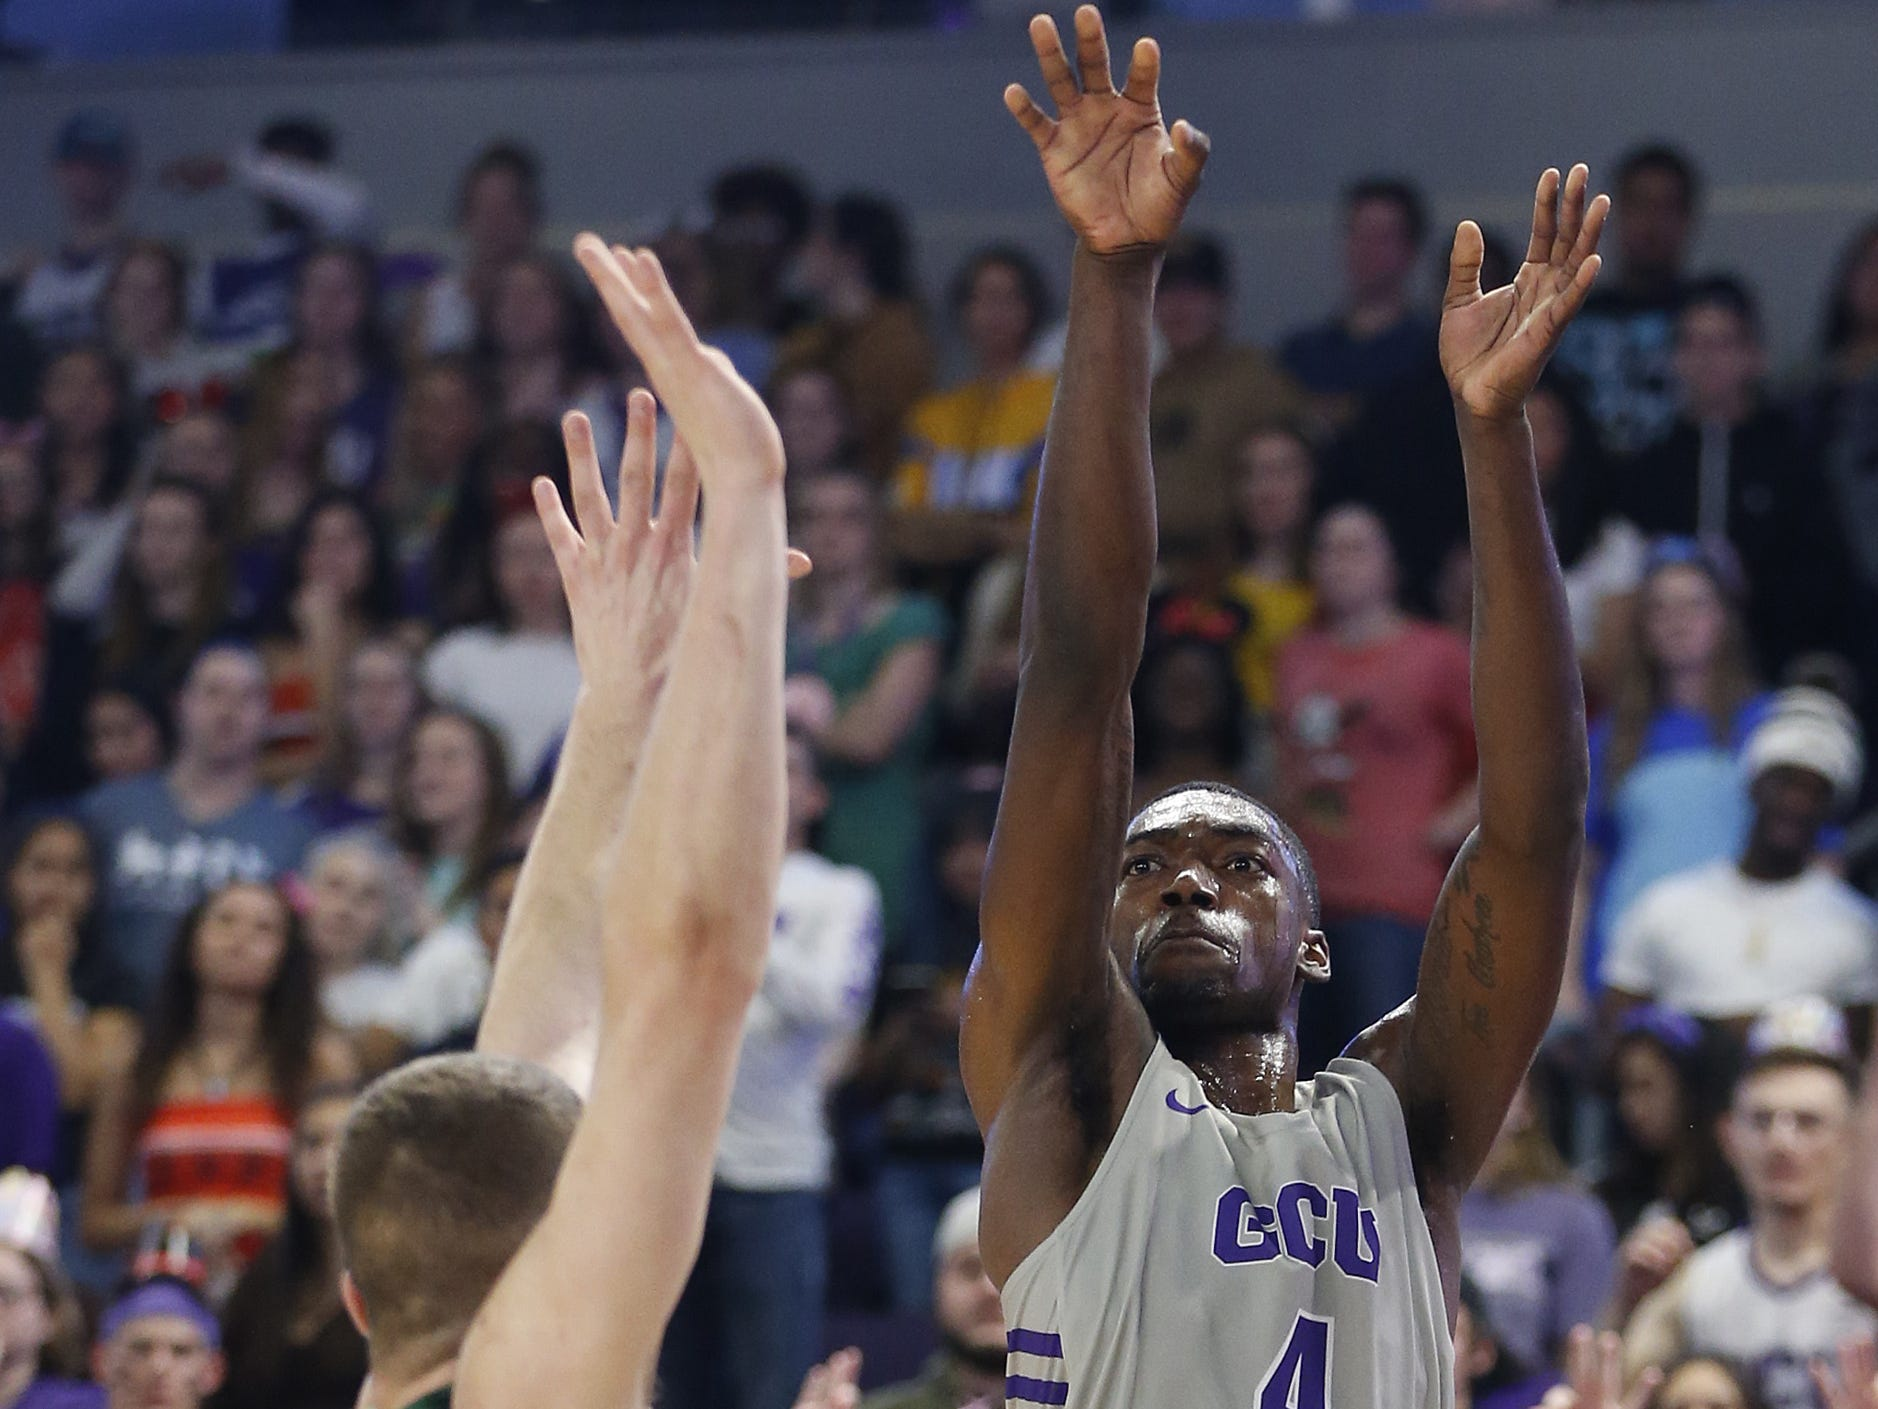 GCU's Oscar Frayer (4) shoots a three pointer against Chicago State University's Patrick Szpir (23) during the first half at Grand Canyon University Arena in Phoenix, Ariz. on January 17, 2019.